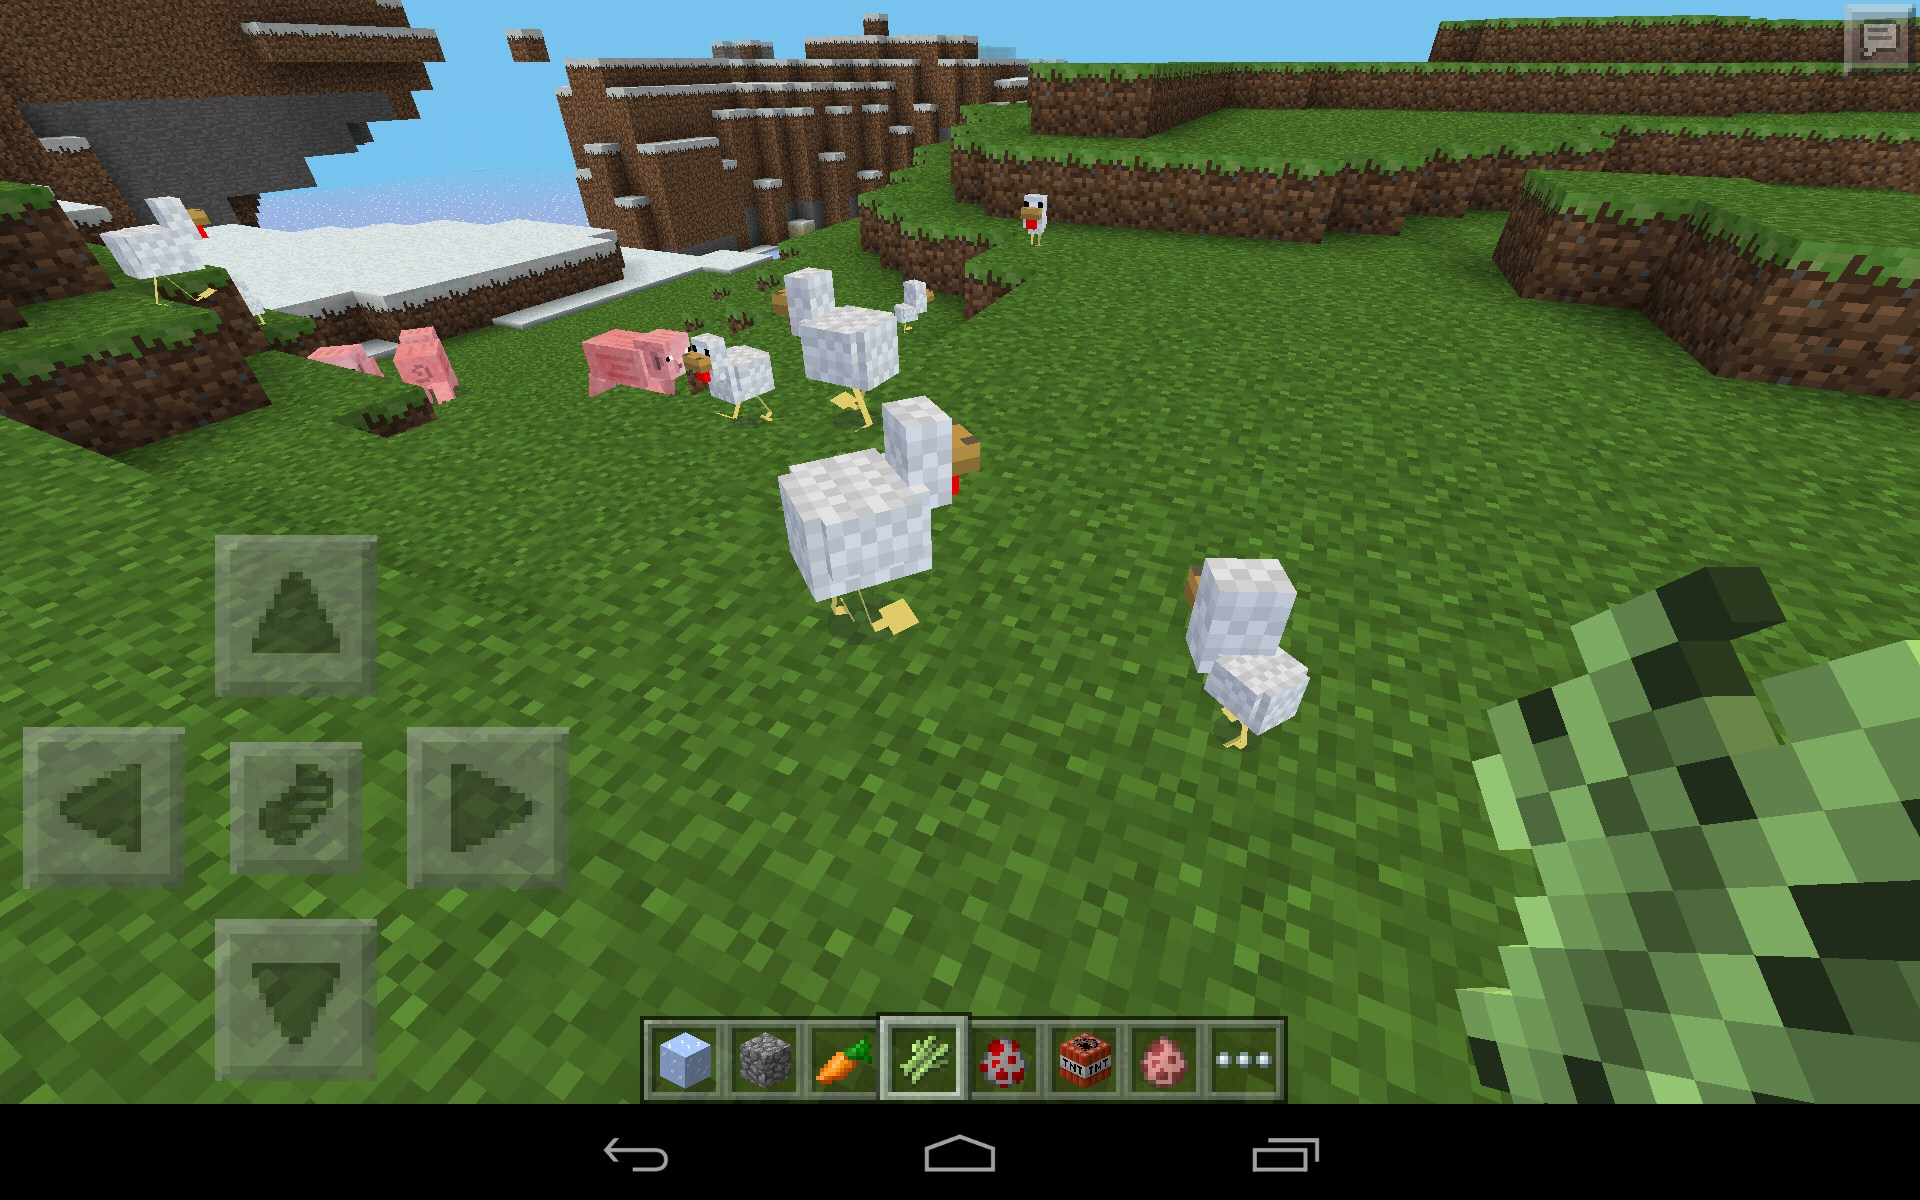 Minecraft pocket edition for samsung galaxy tab 3 7 0 for Mine craft pocket addition